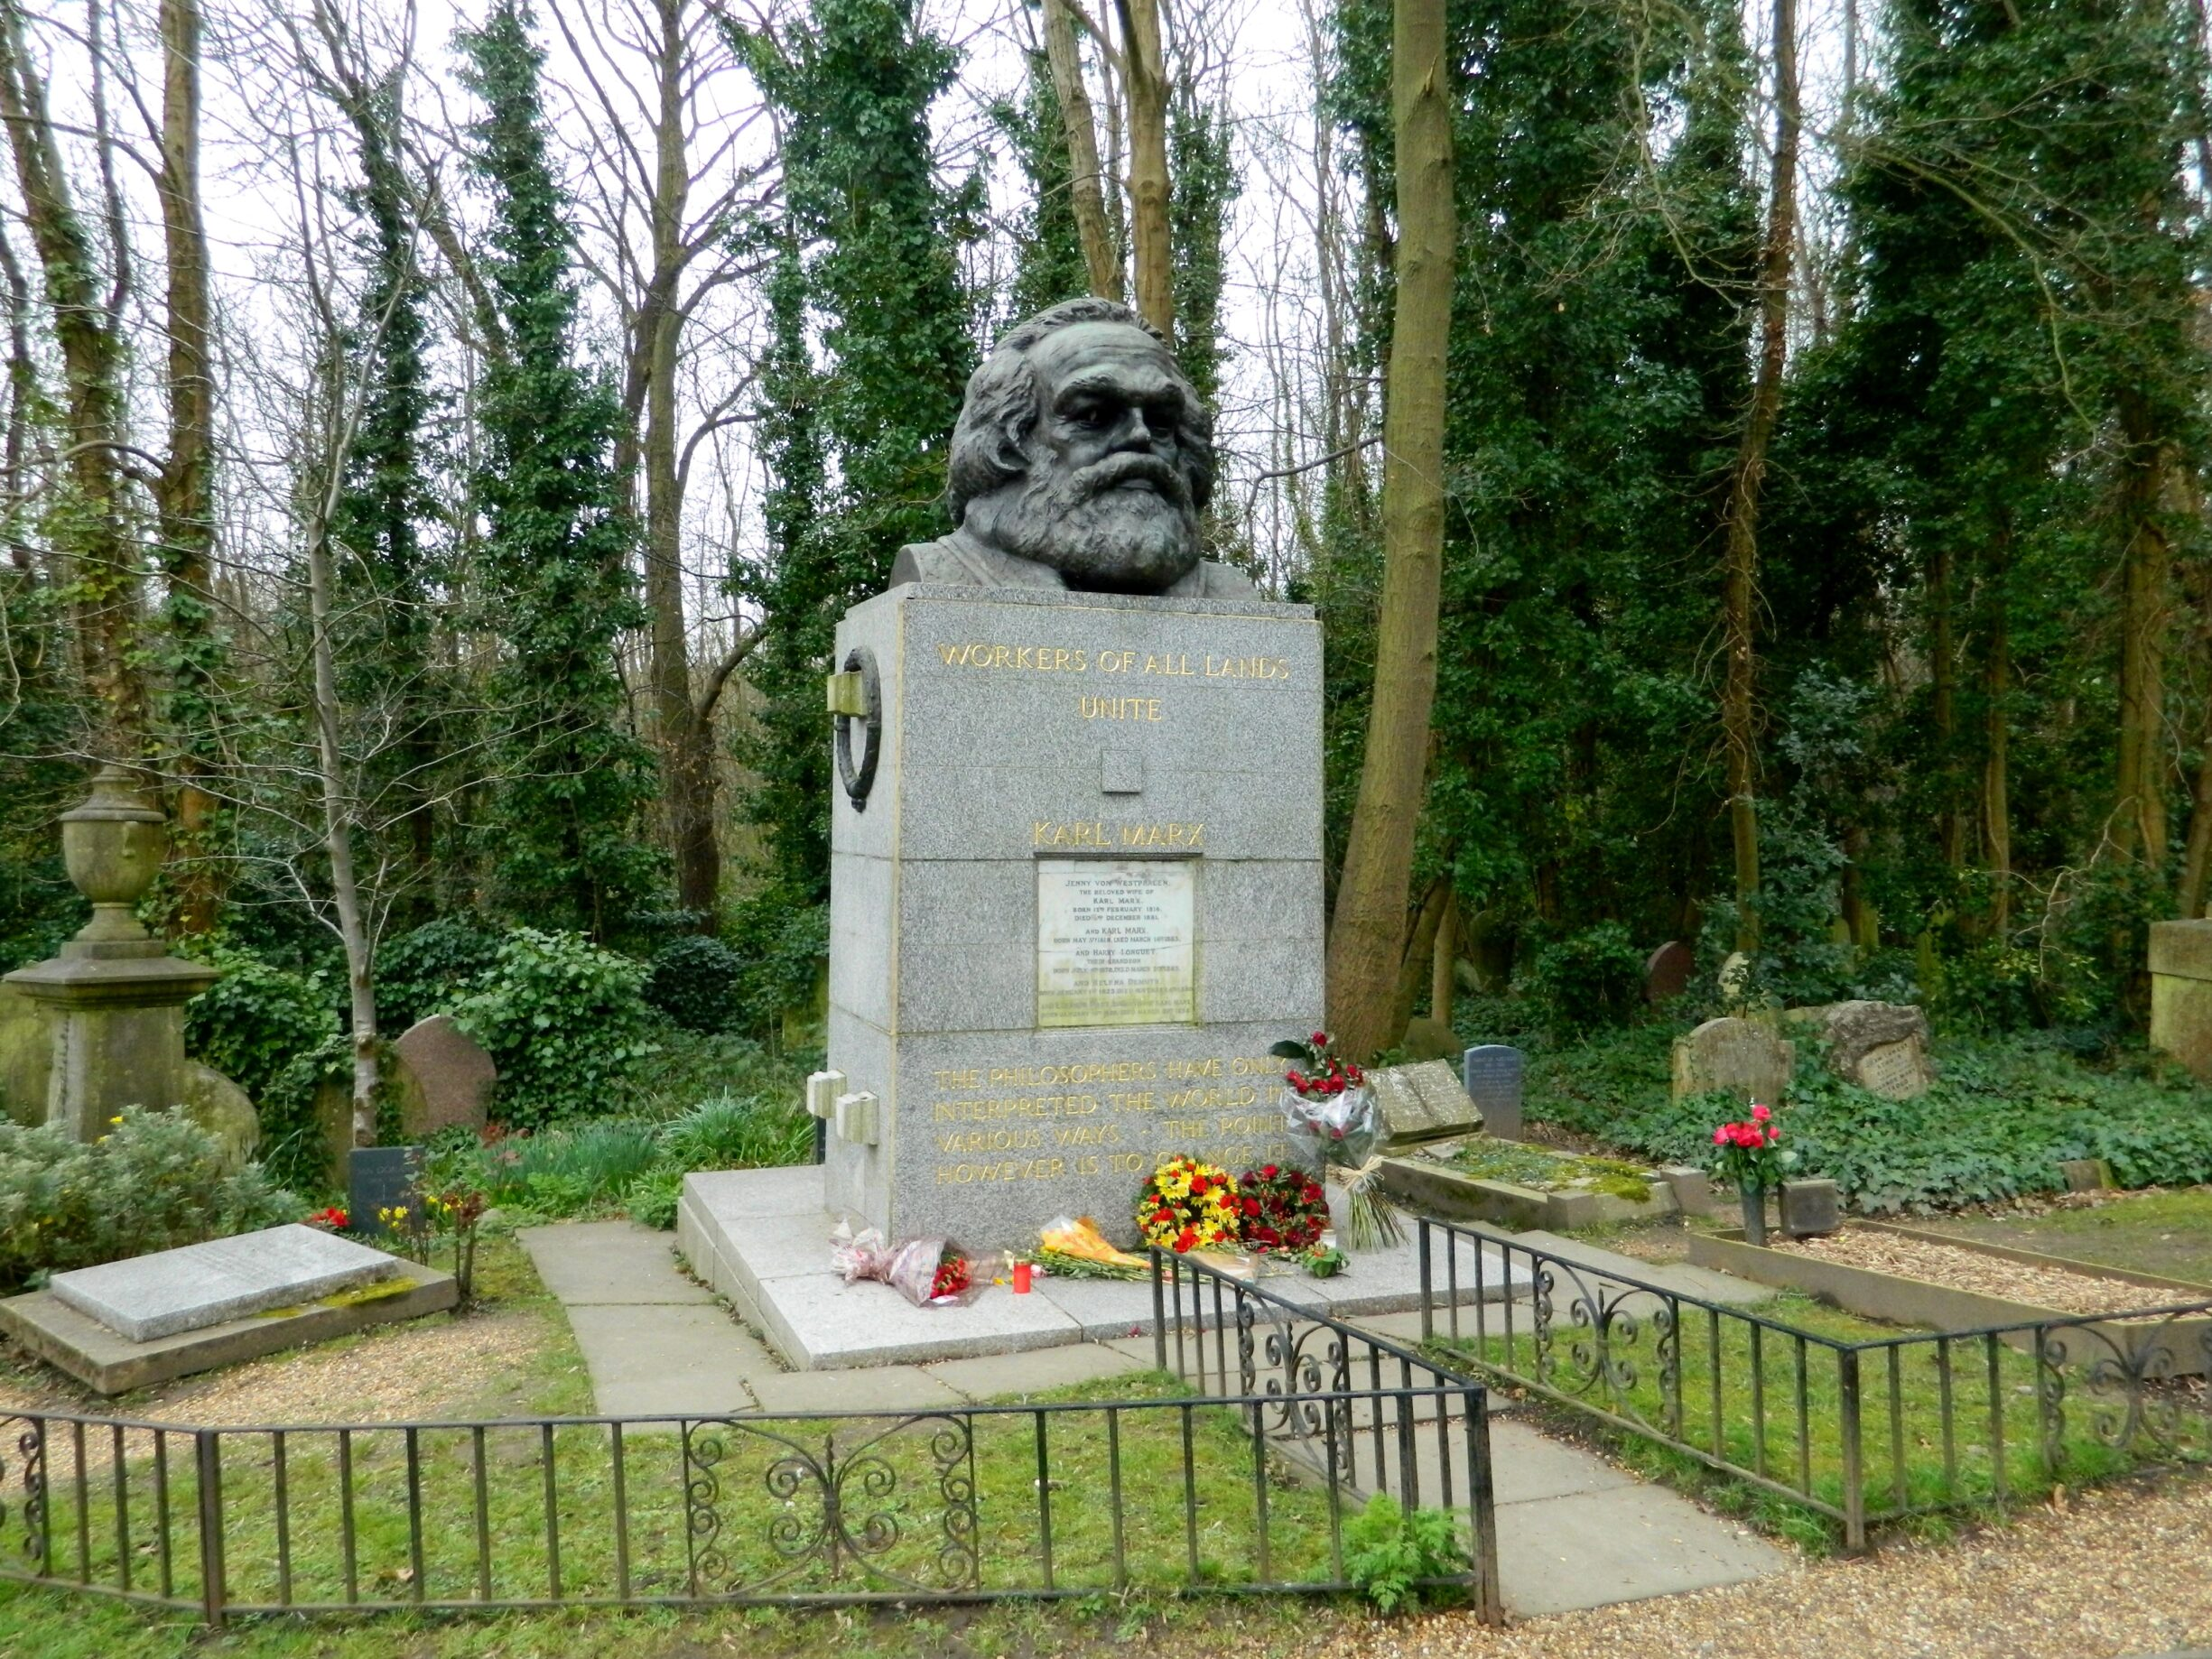 Grave of Karl Marx at the Highgate Cemetary in London. Photo taken 26 march 2016 by Paasikivi. (CC BY-SA 4.0),